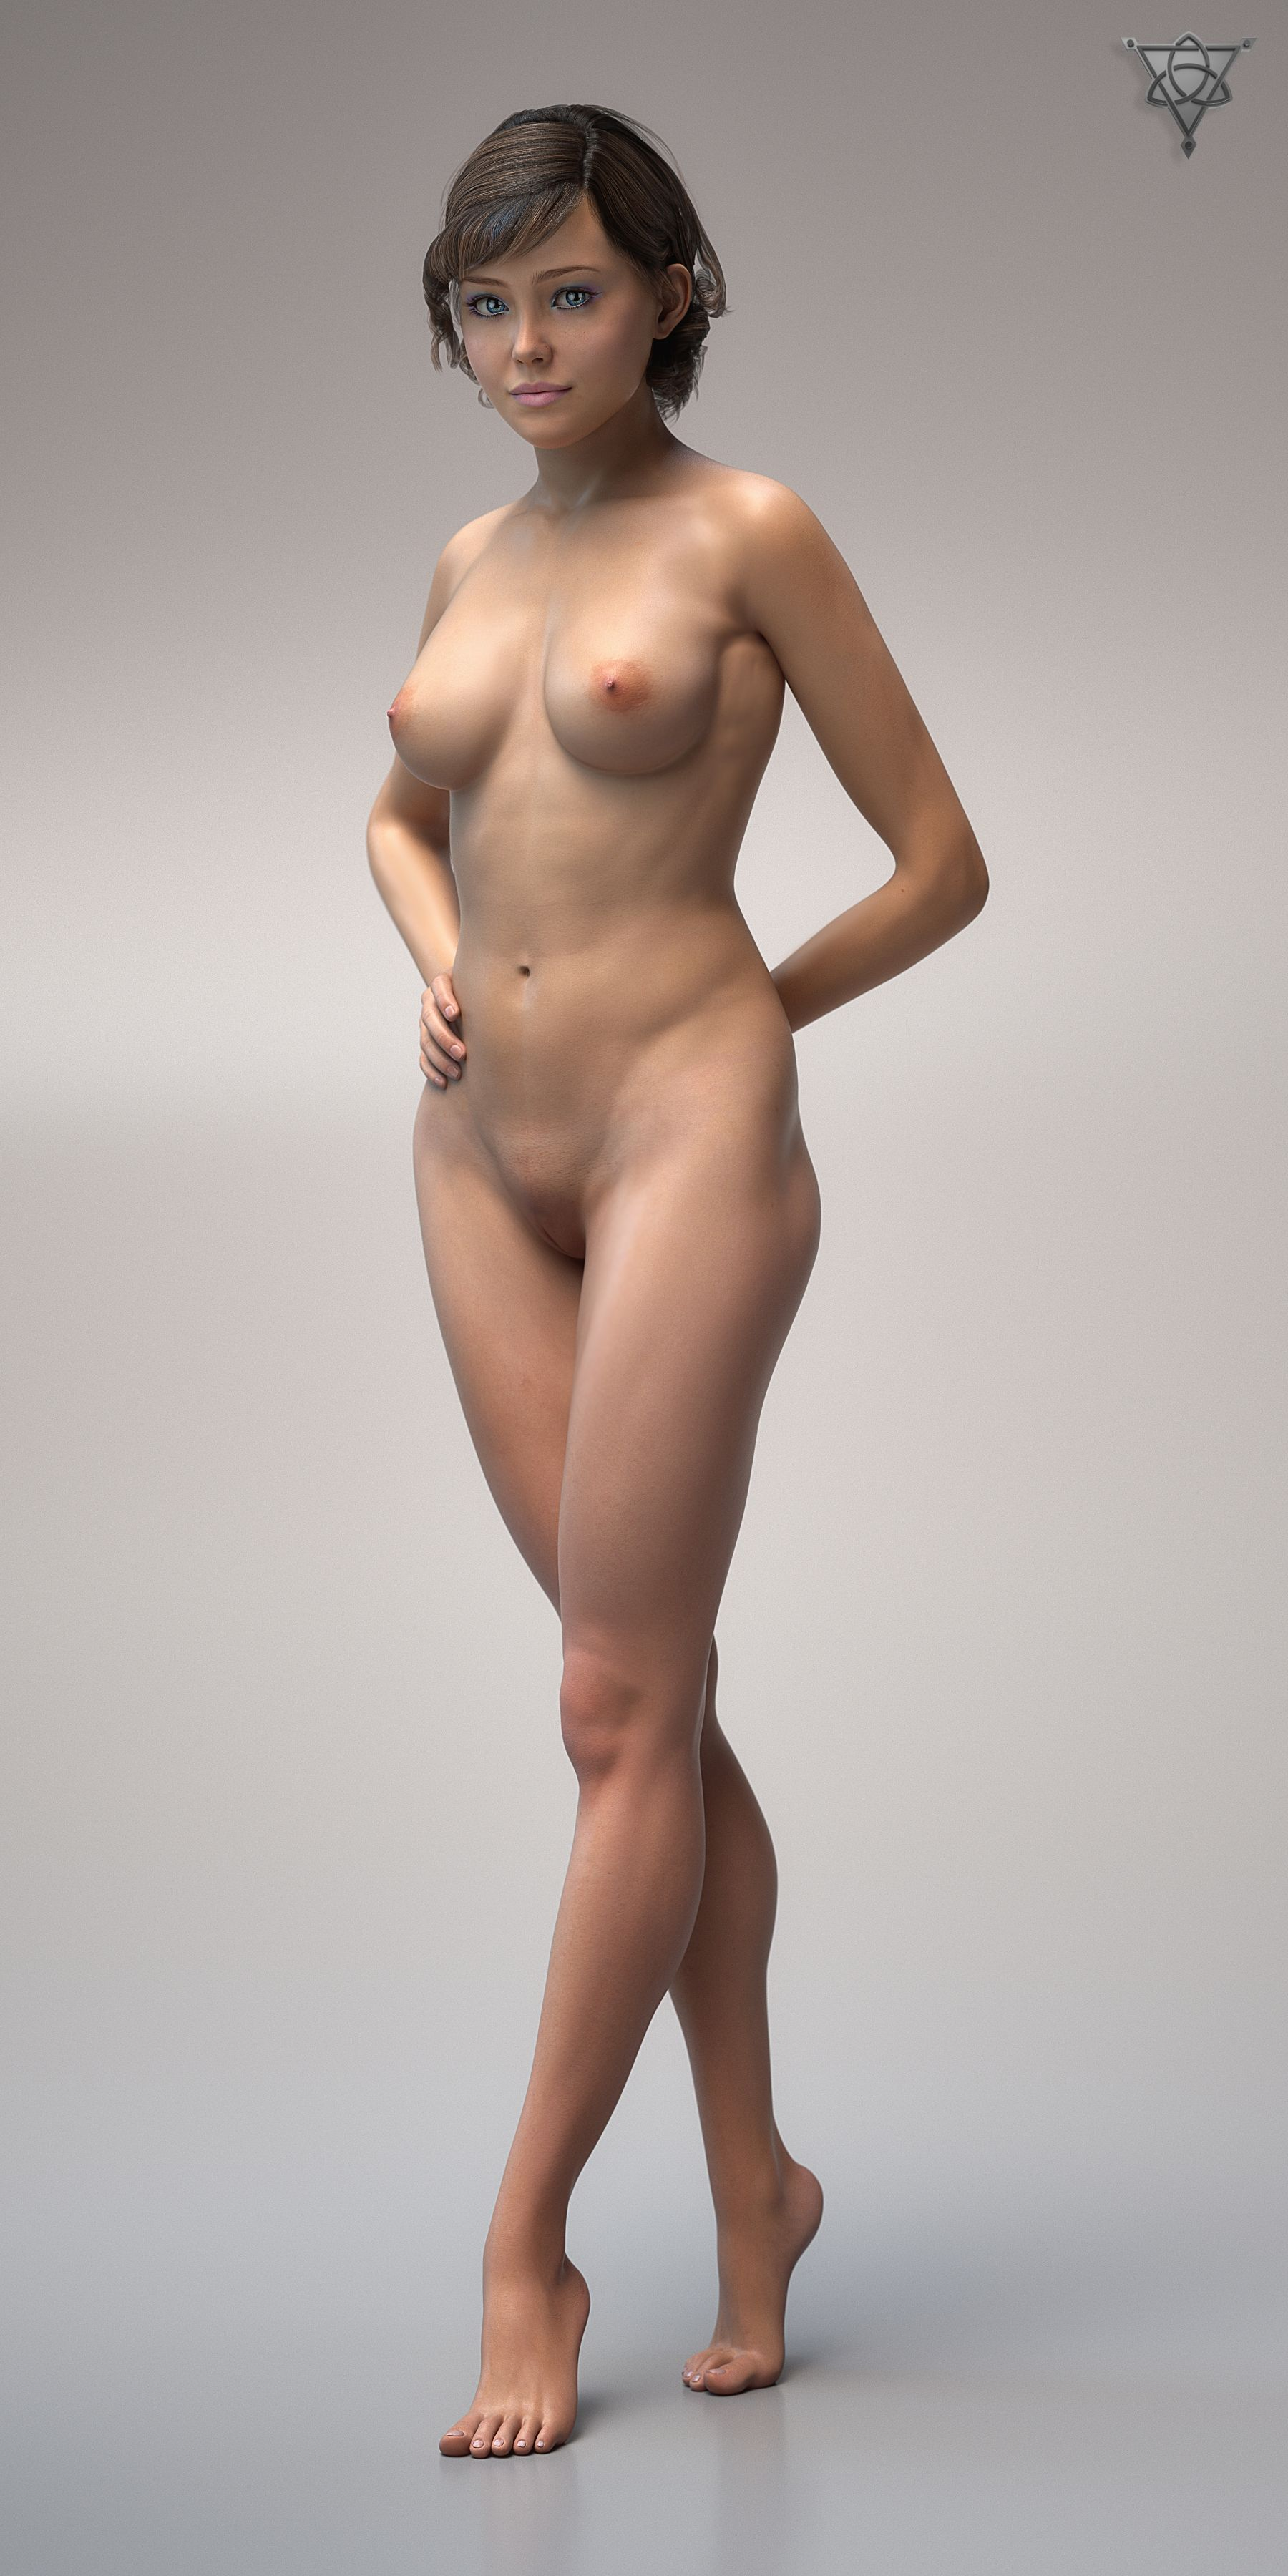 3D CG nude 17 Best images about 3D CGI Render on Pinterest | Models, Cyberpunk and Hot  outfits